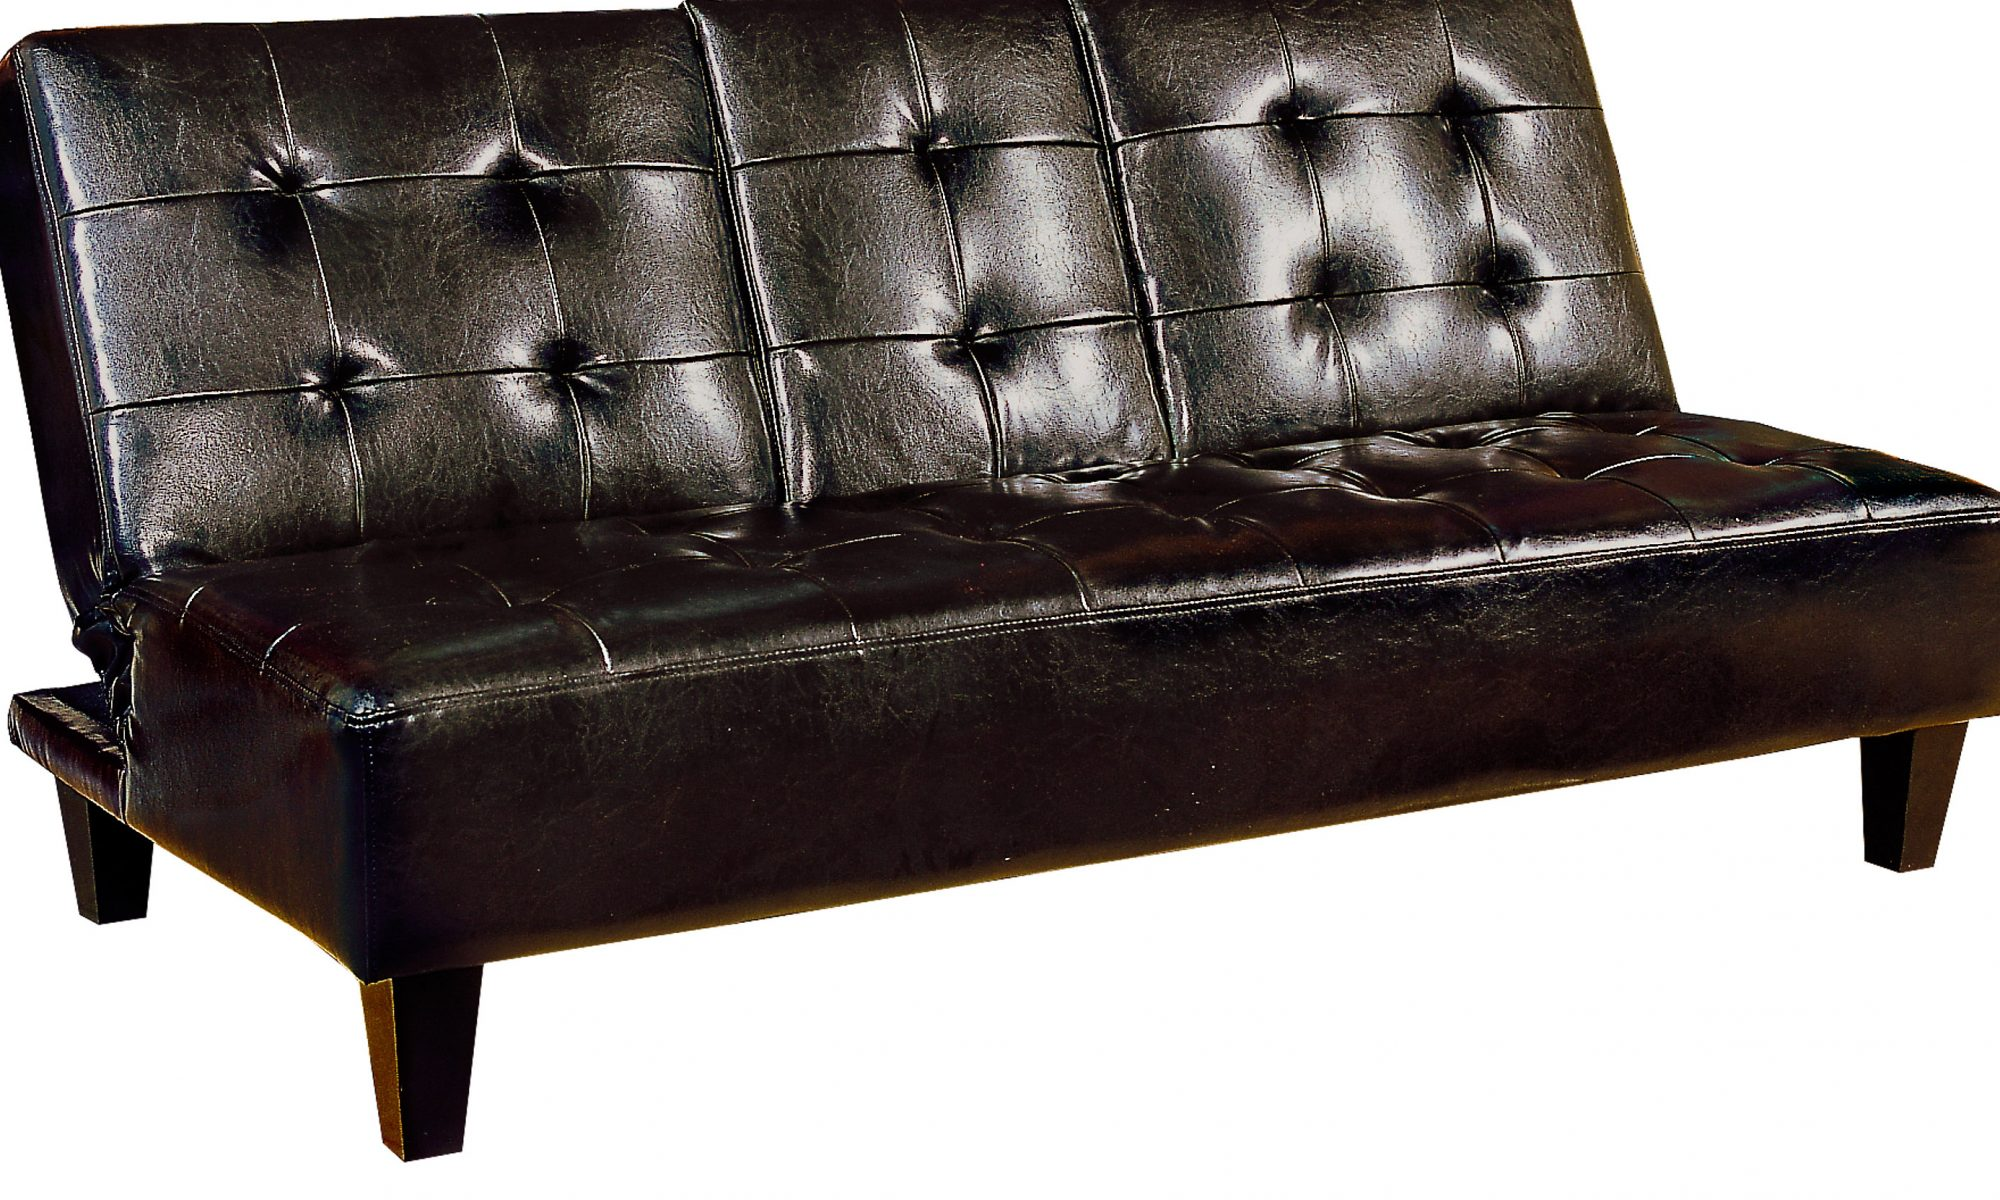 24400 Bart Espresso Dark Brown Klik Klak Futon inside Furniture